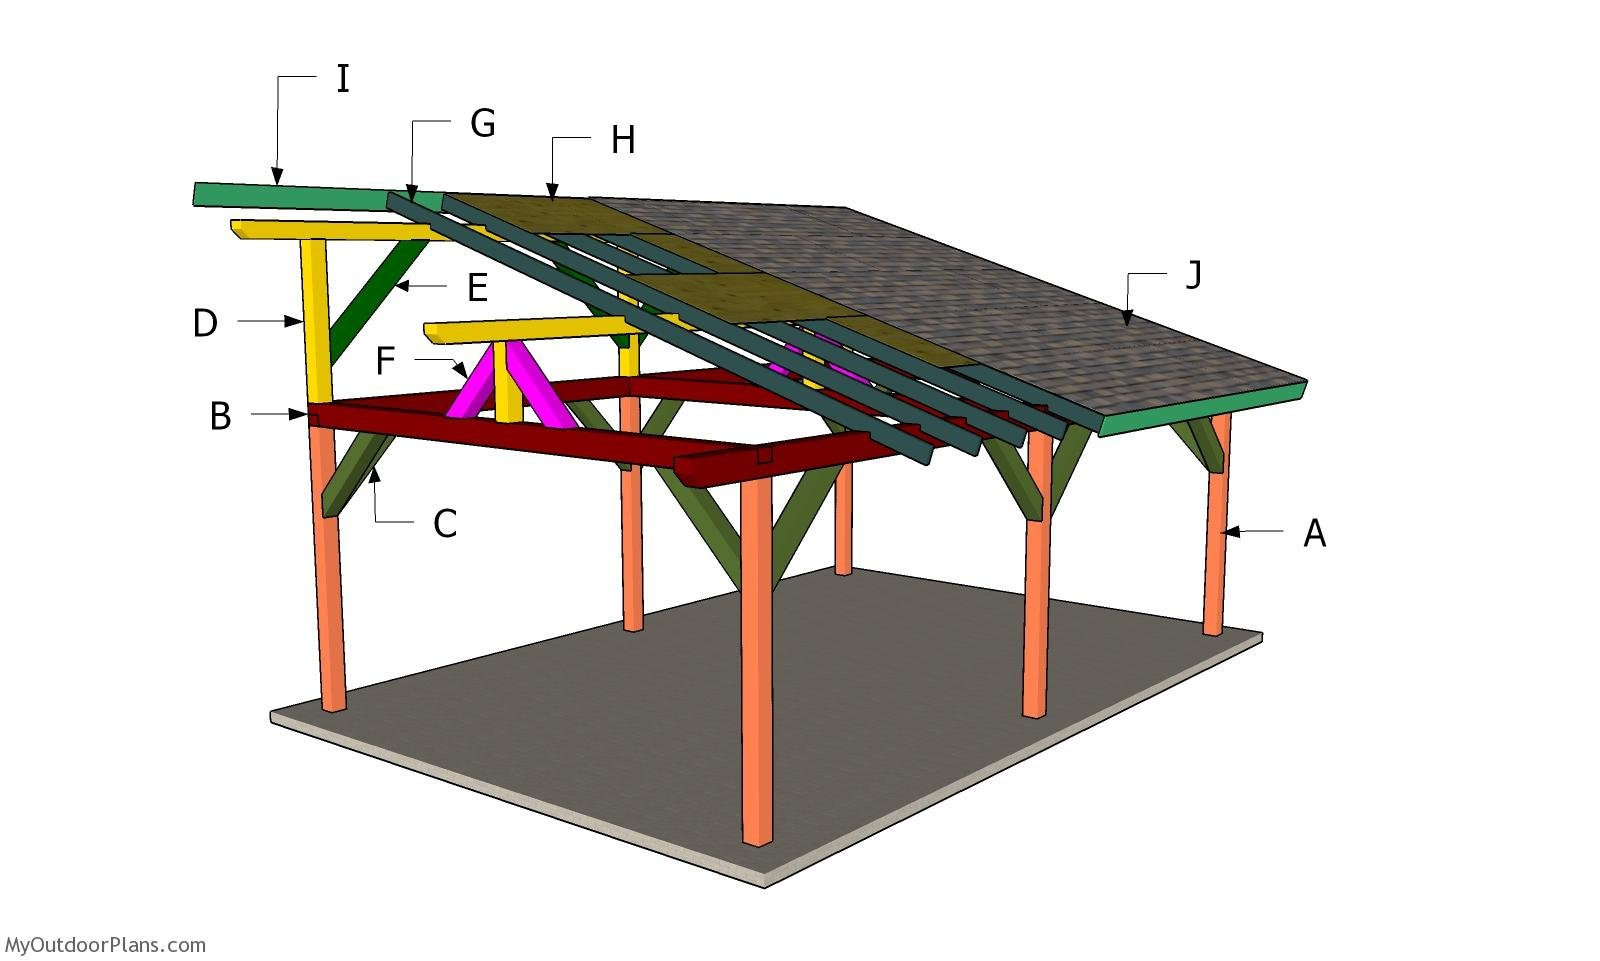 Building a Lean to Roof for a 16x24 Pavilion